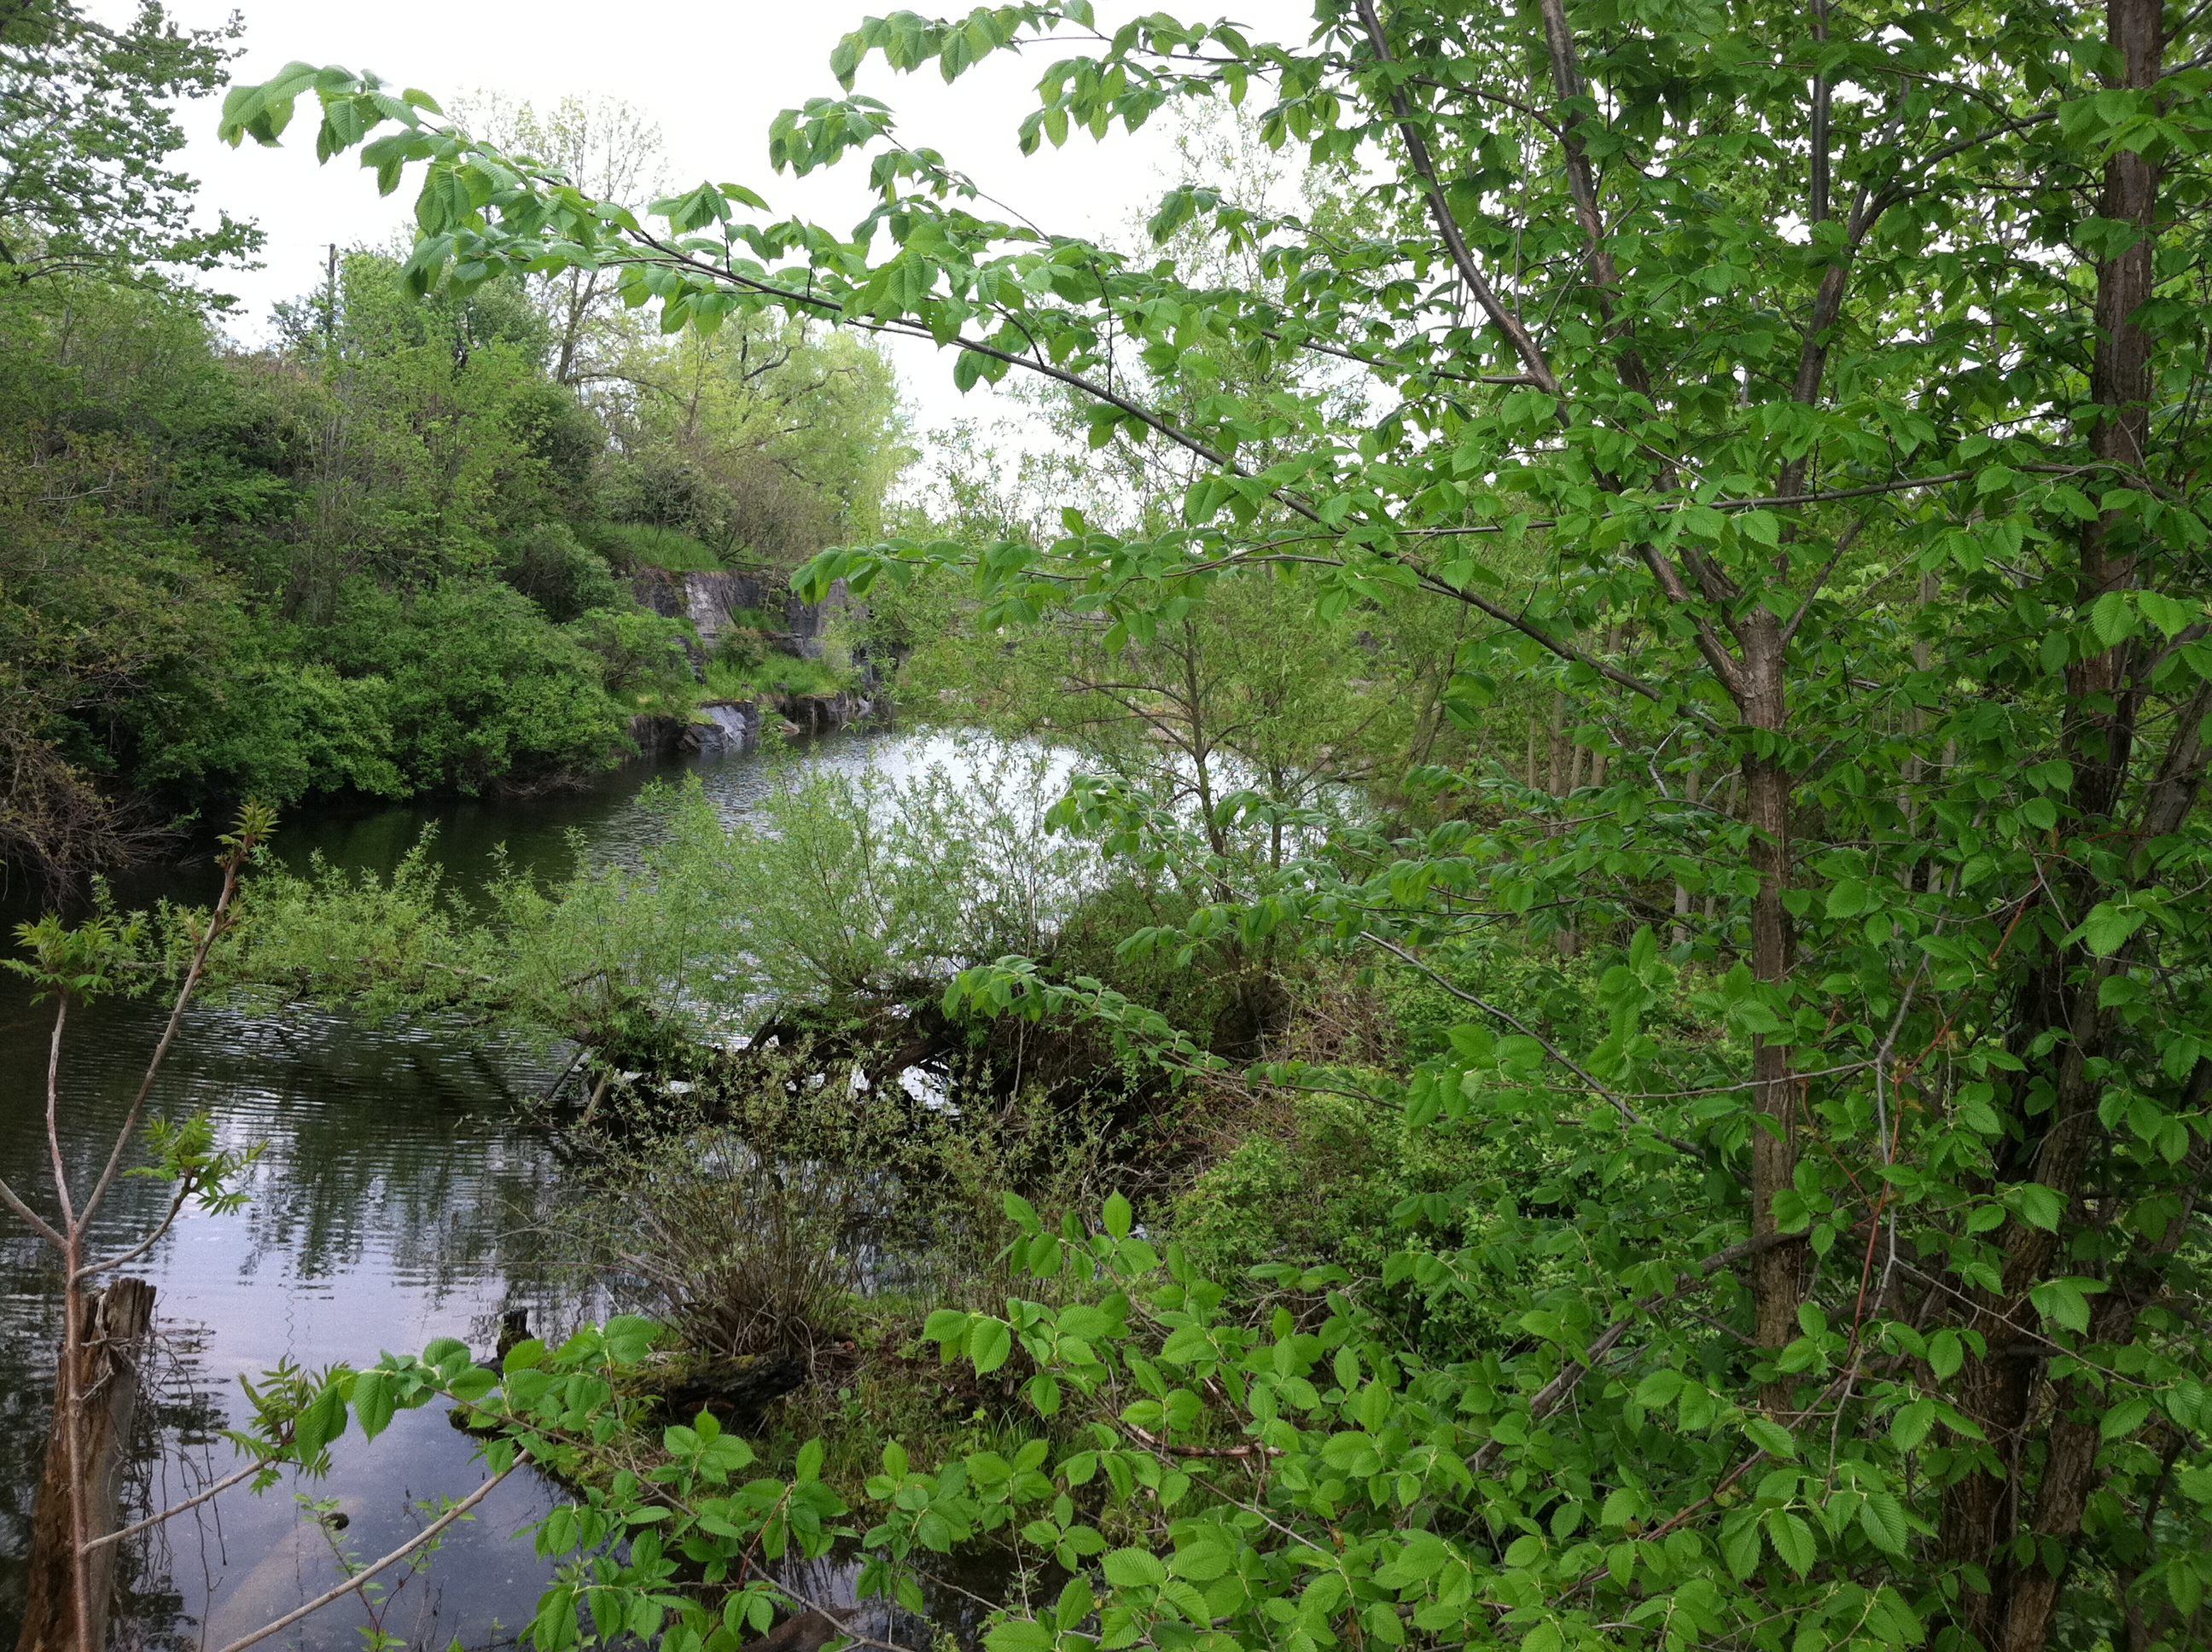 Beaver, muskrat, fish, turtles, salamanders, and a symphony of frogs have made homes in the old quarry.